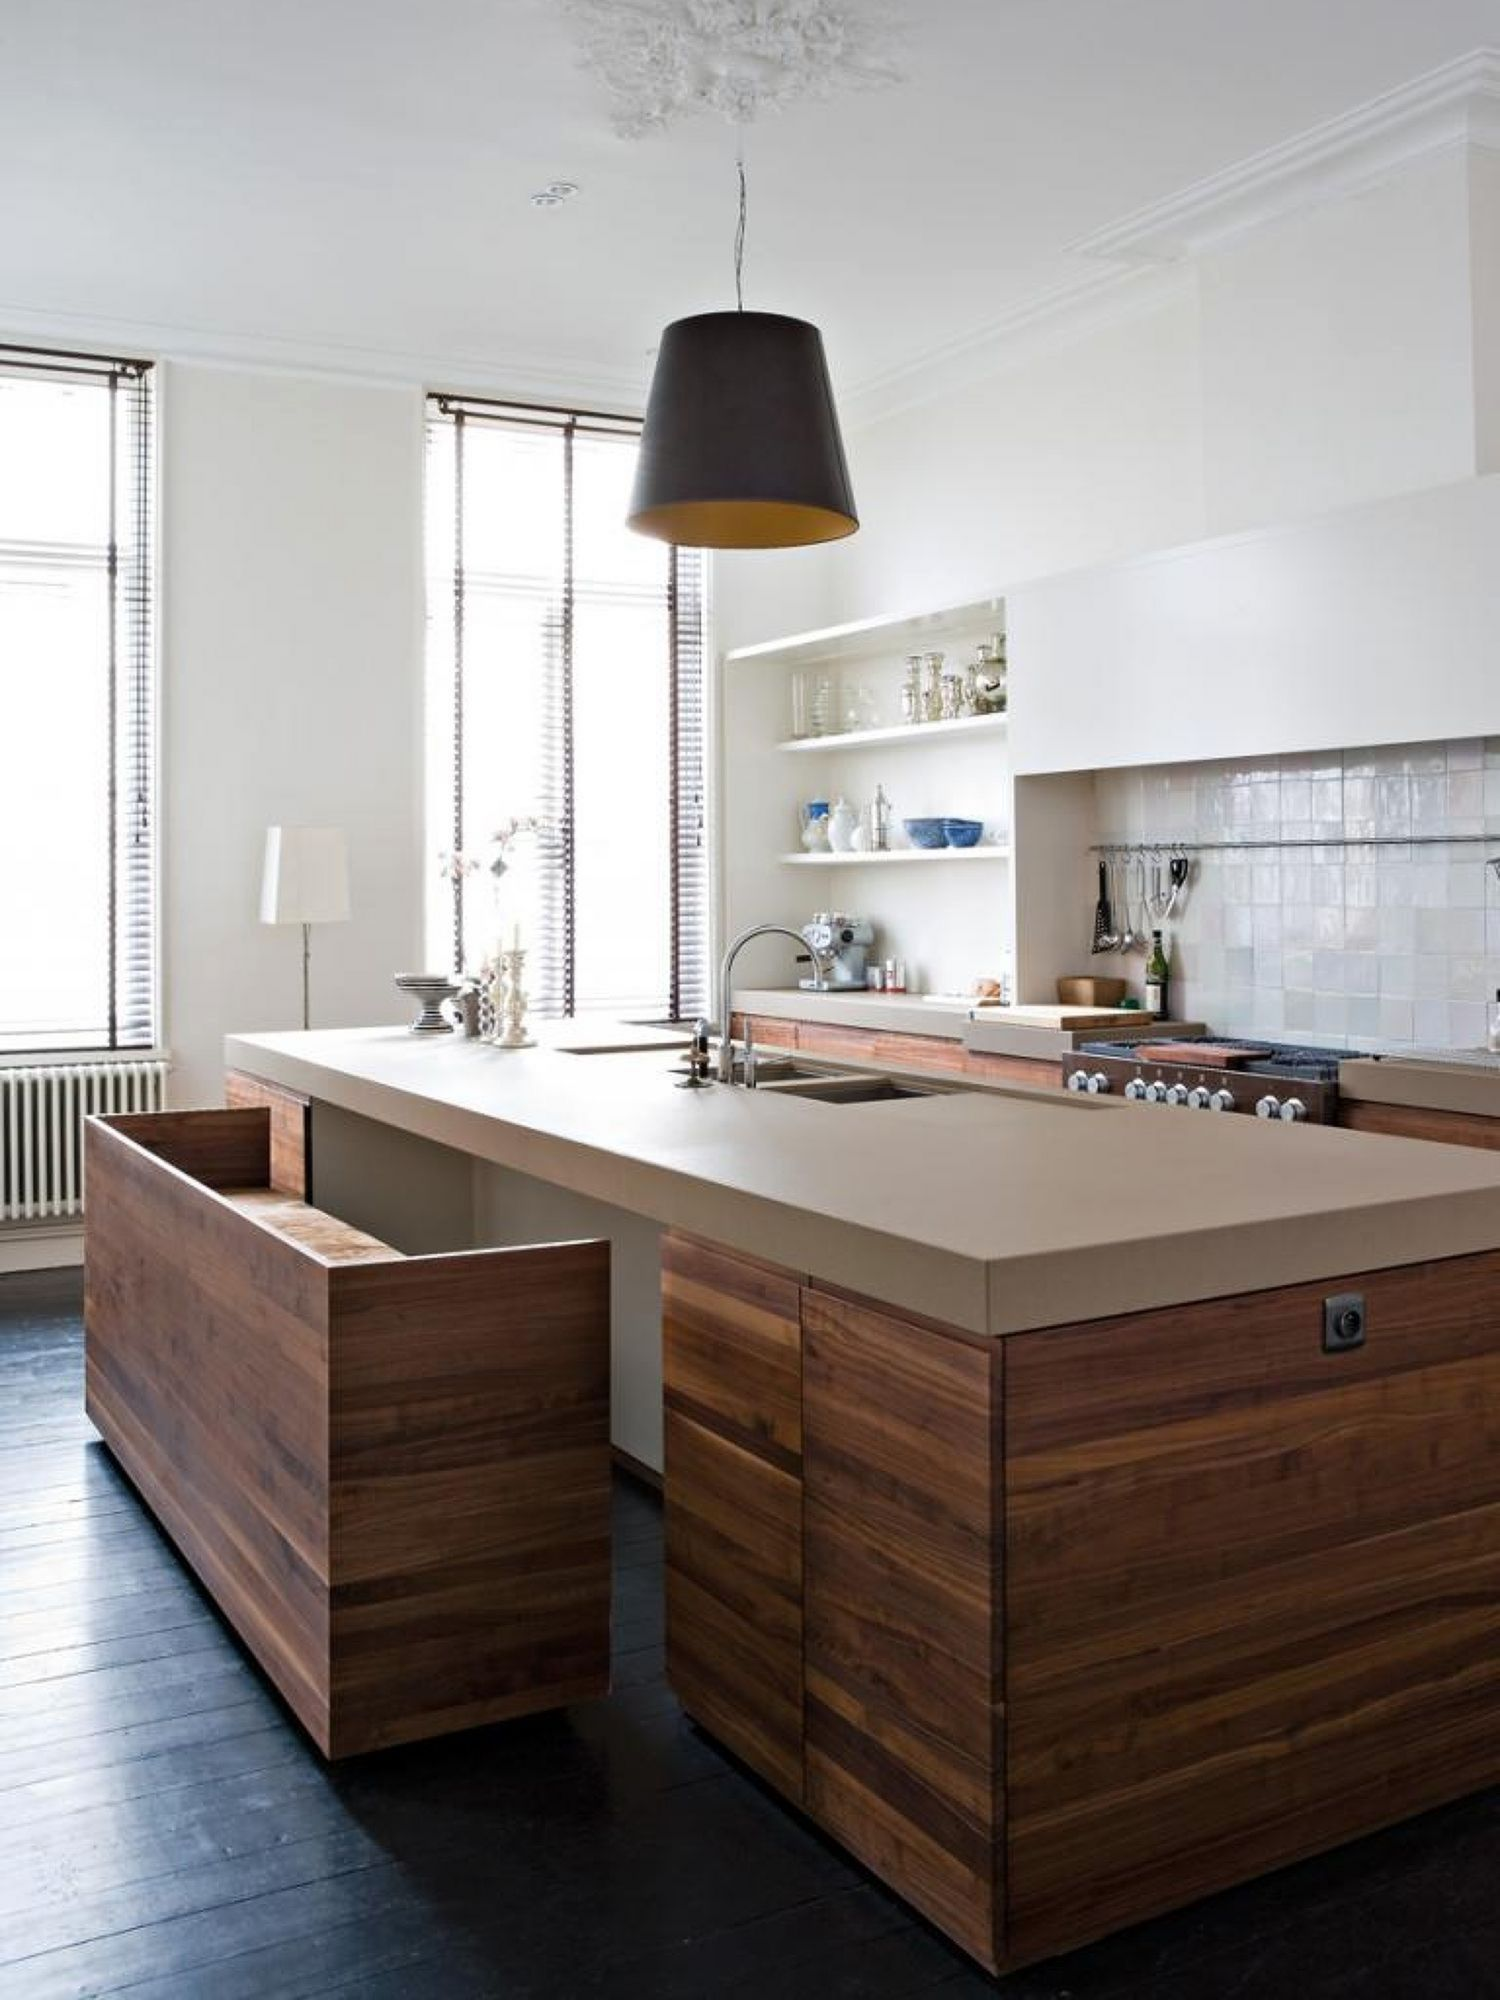 7 Creative Kitchen Island With Comfortable Bench Ideas Modern Kitchen Island Kitchen Island Bench Kitchen Island With Seating